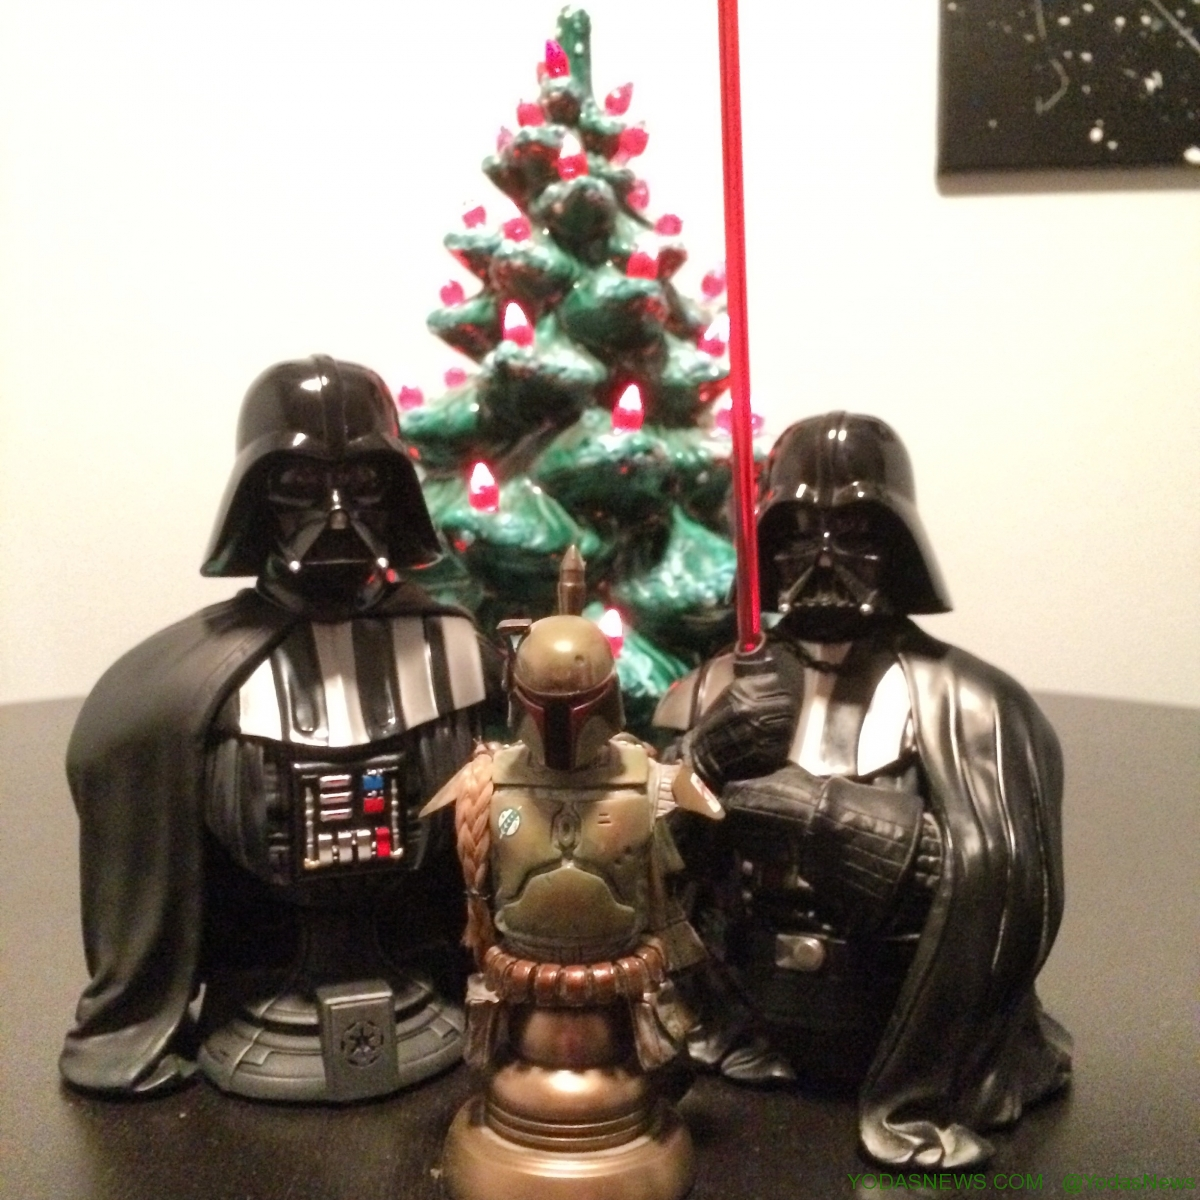 Share └ Tags: First Look Gallery: Gentle Giant Darth Vader